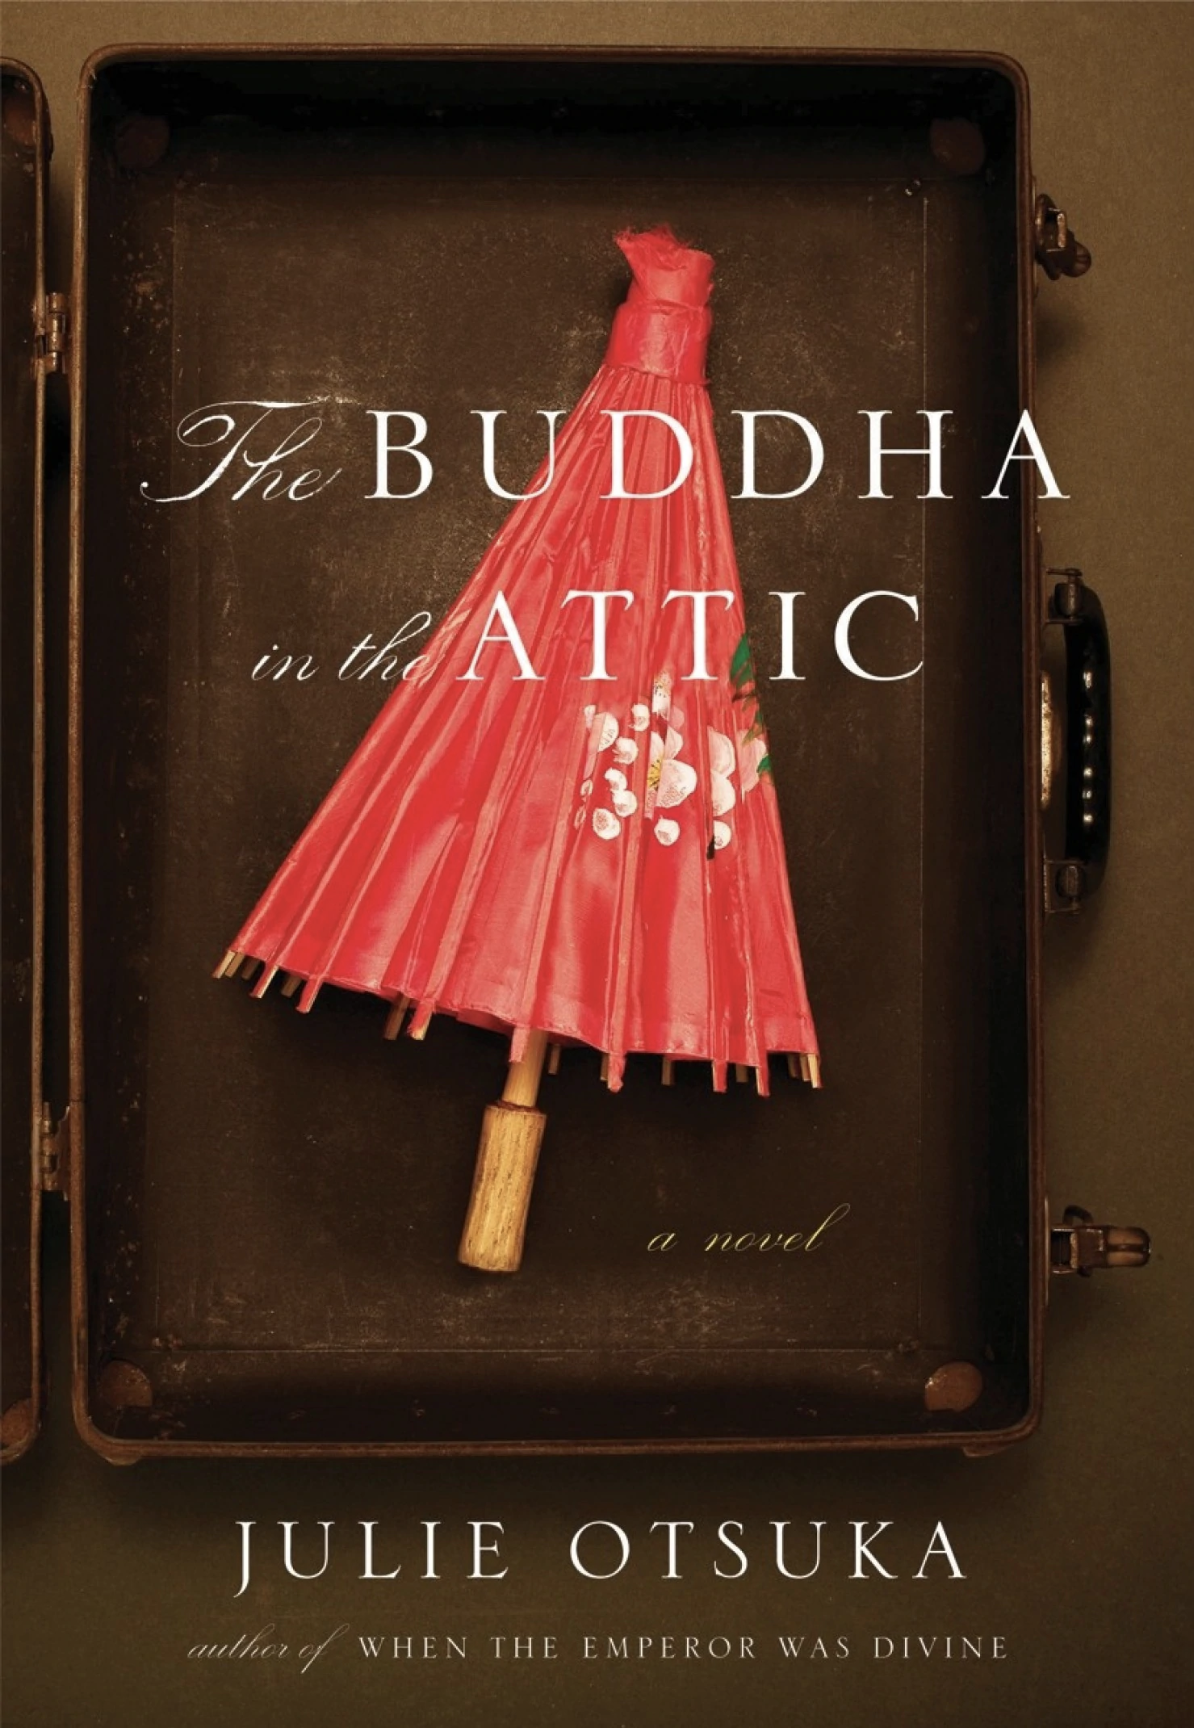 Julie Otsuka, The Buddha in the Attic